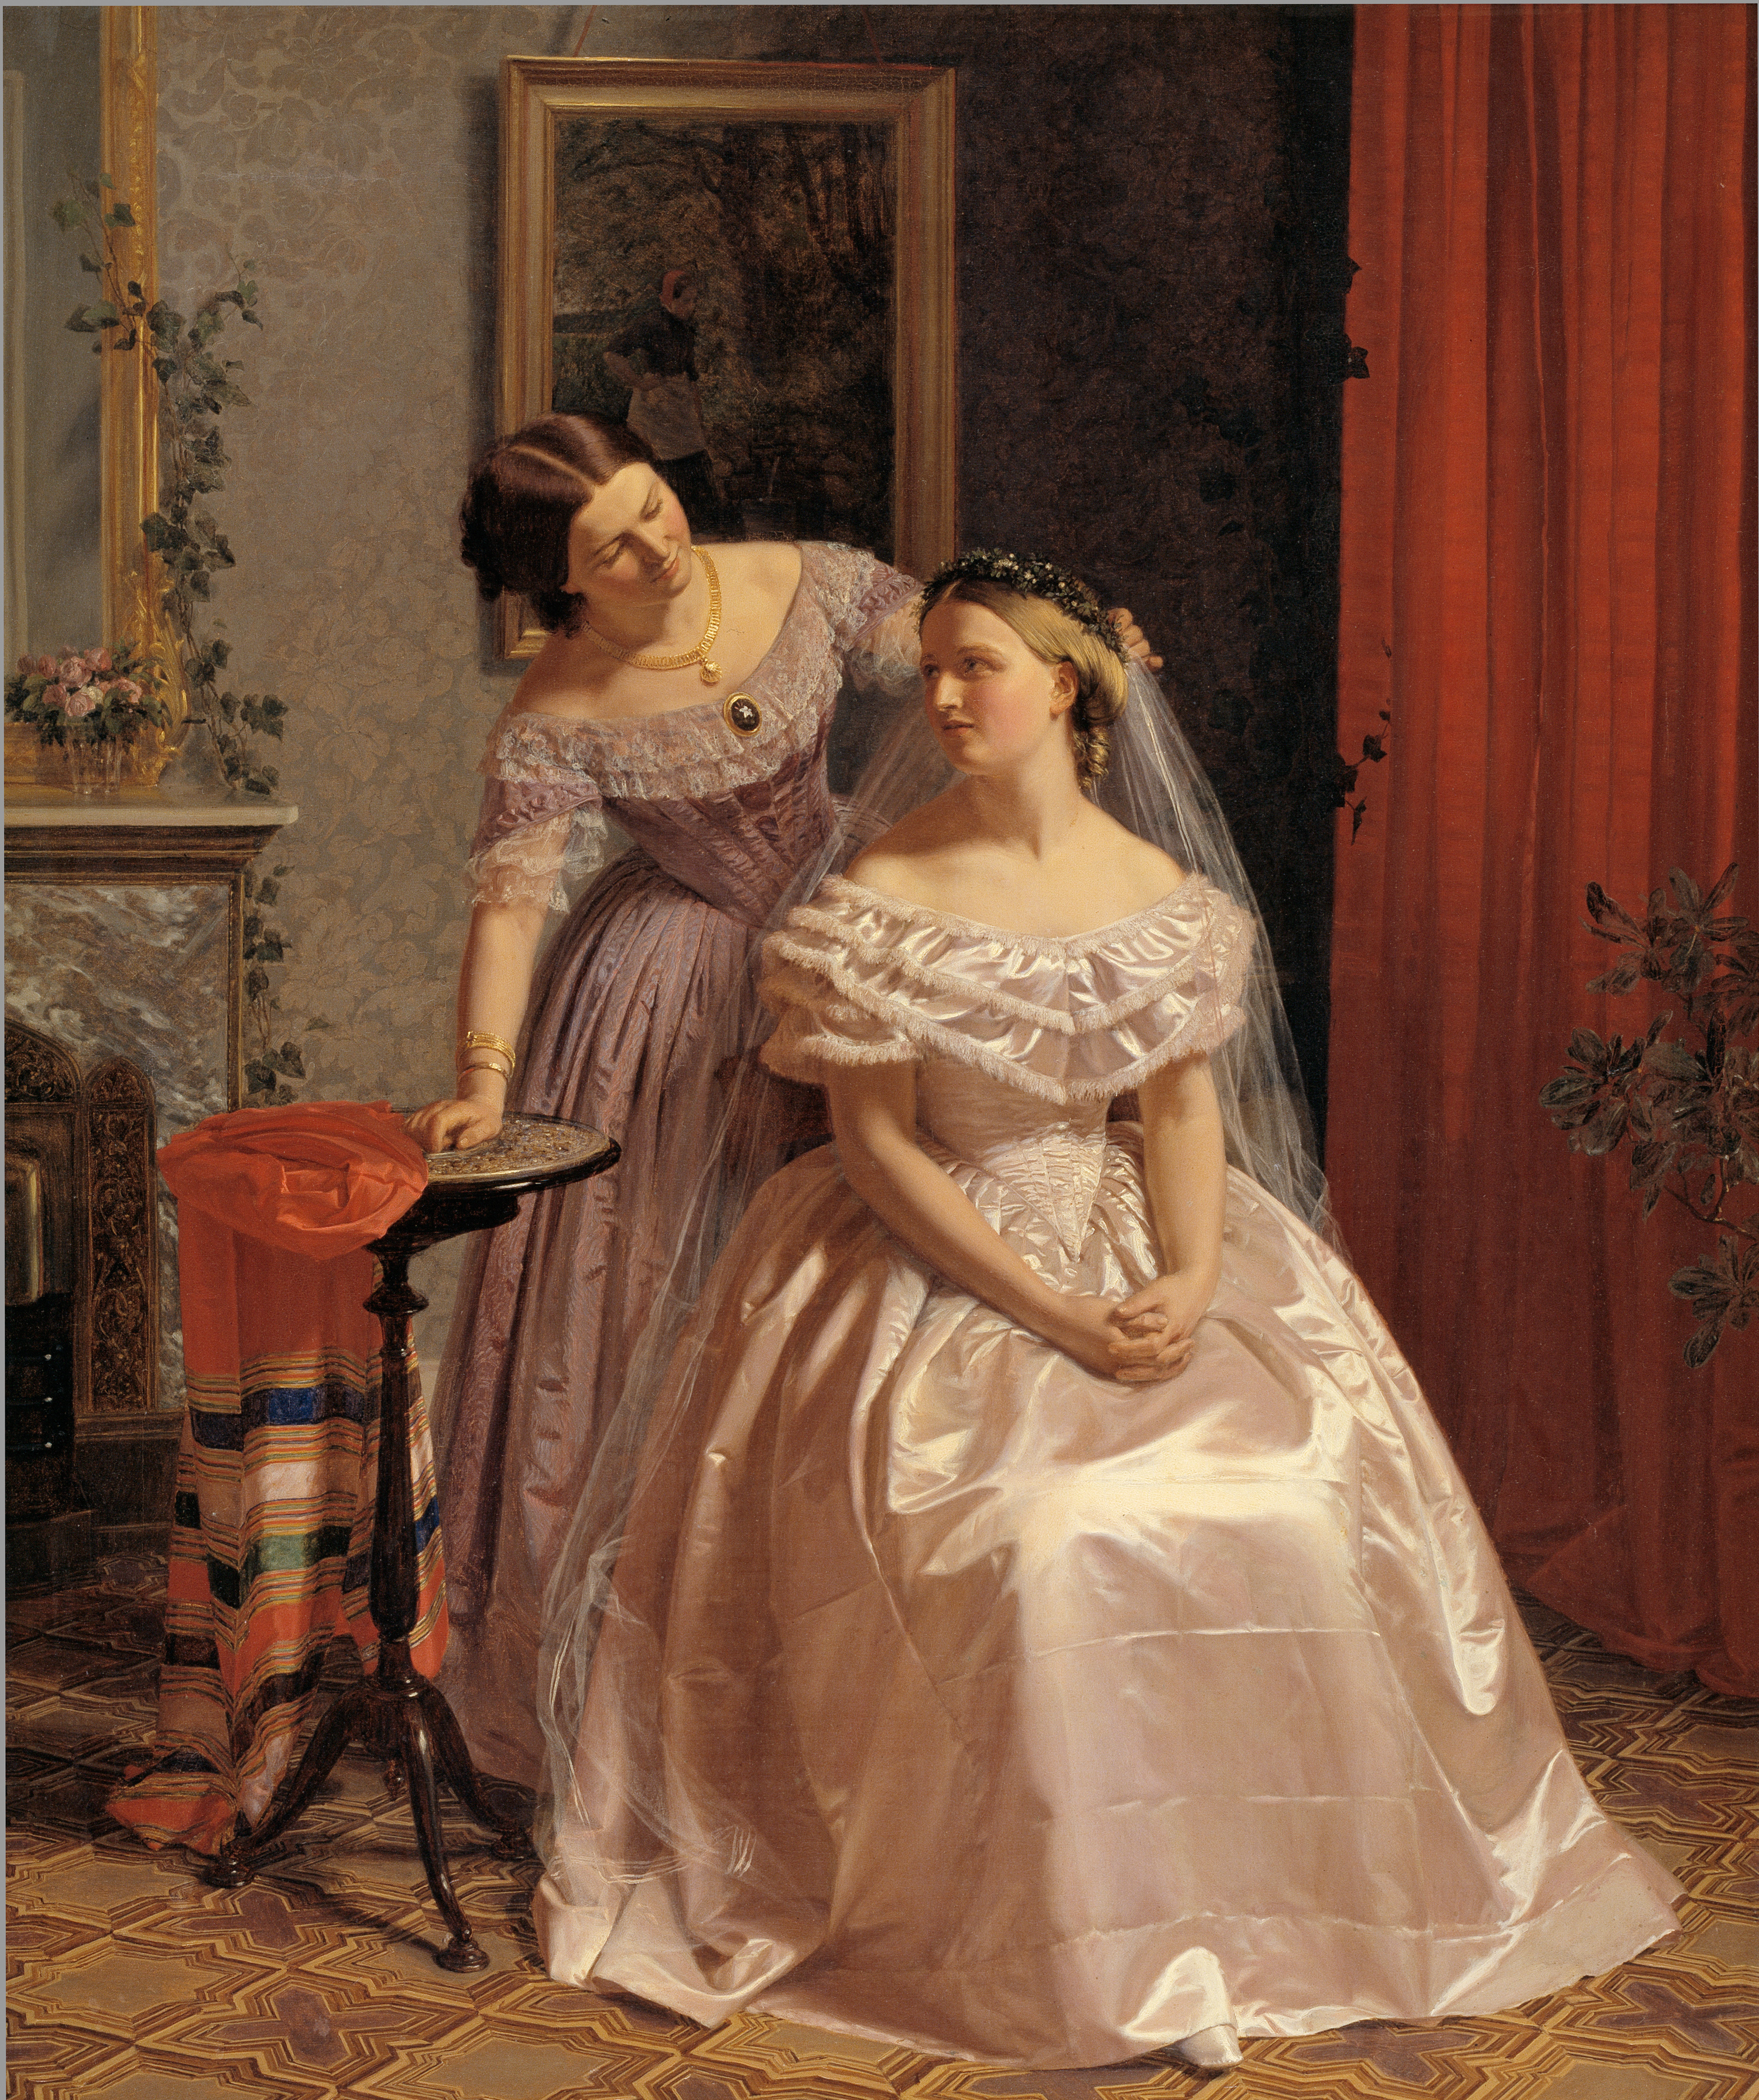 th century marriage manuals advice for young wives mimi matthews the bride adorned by her friend by henrik olrik 1850